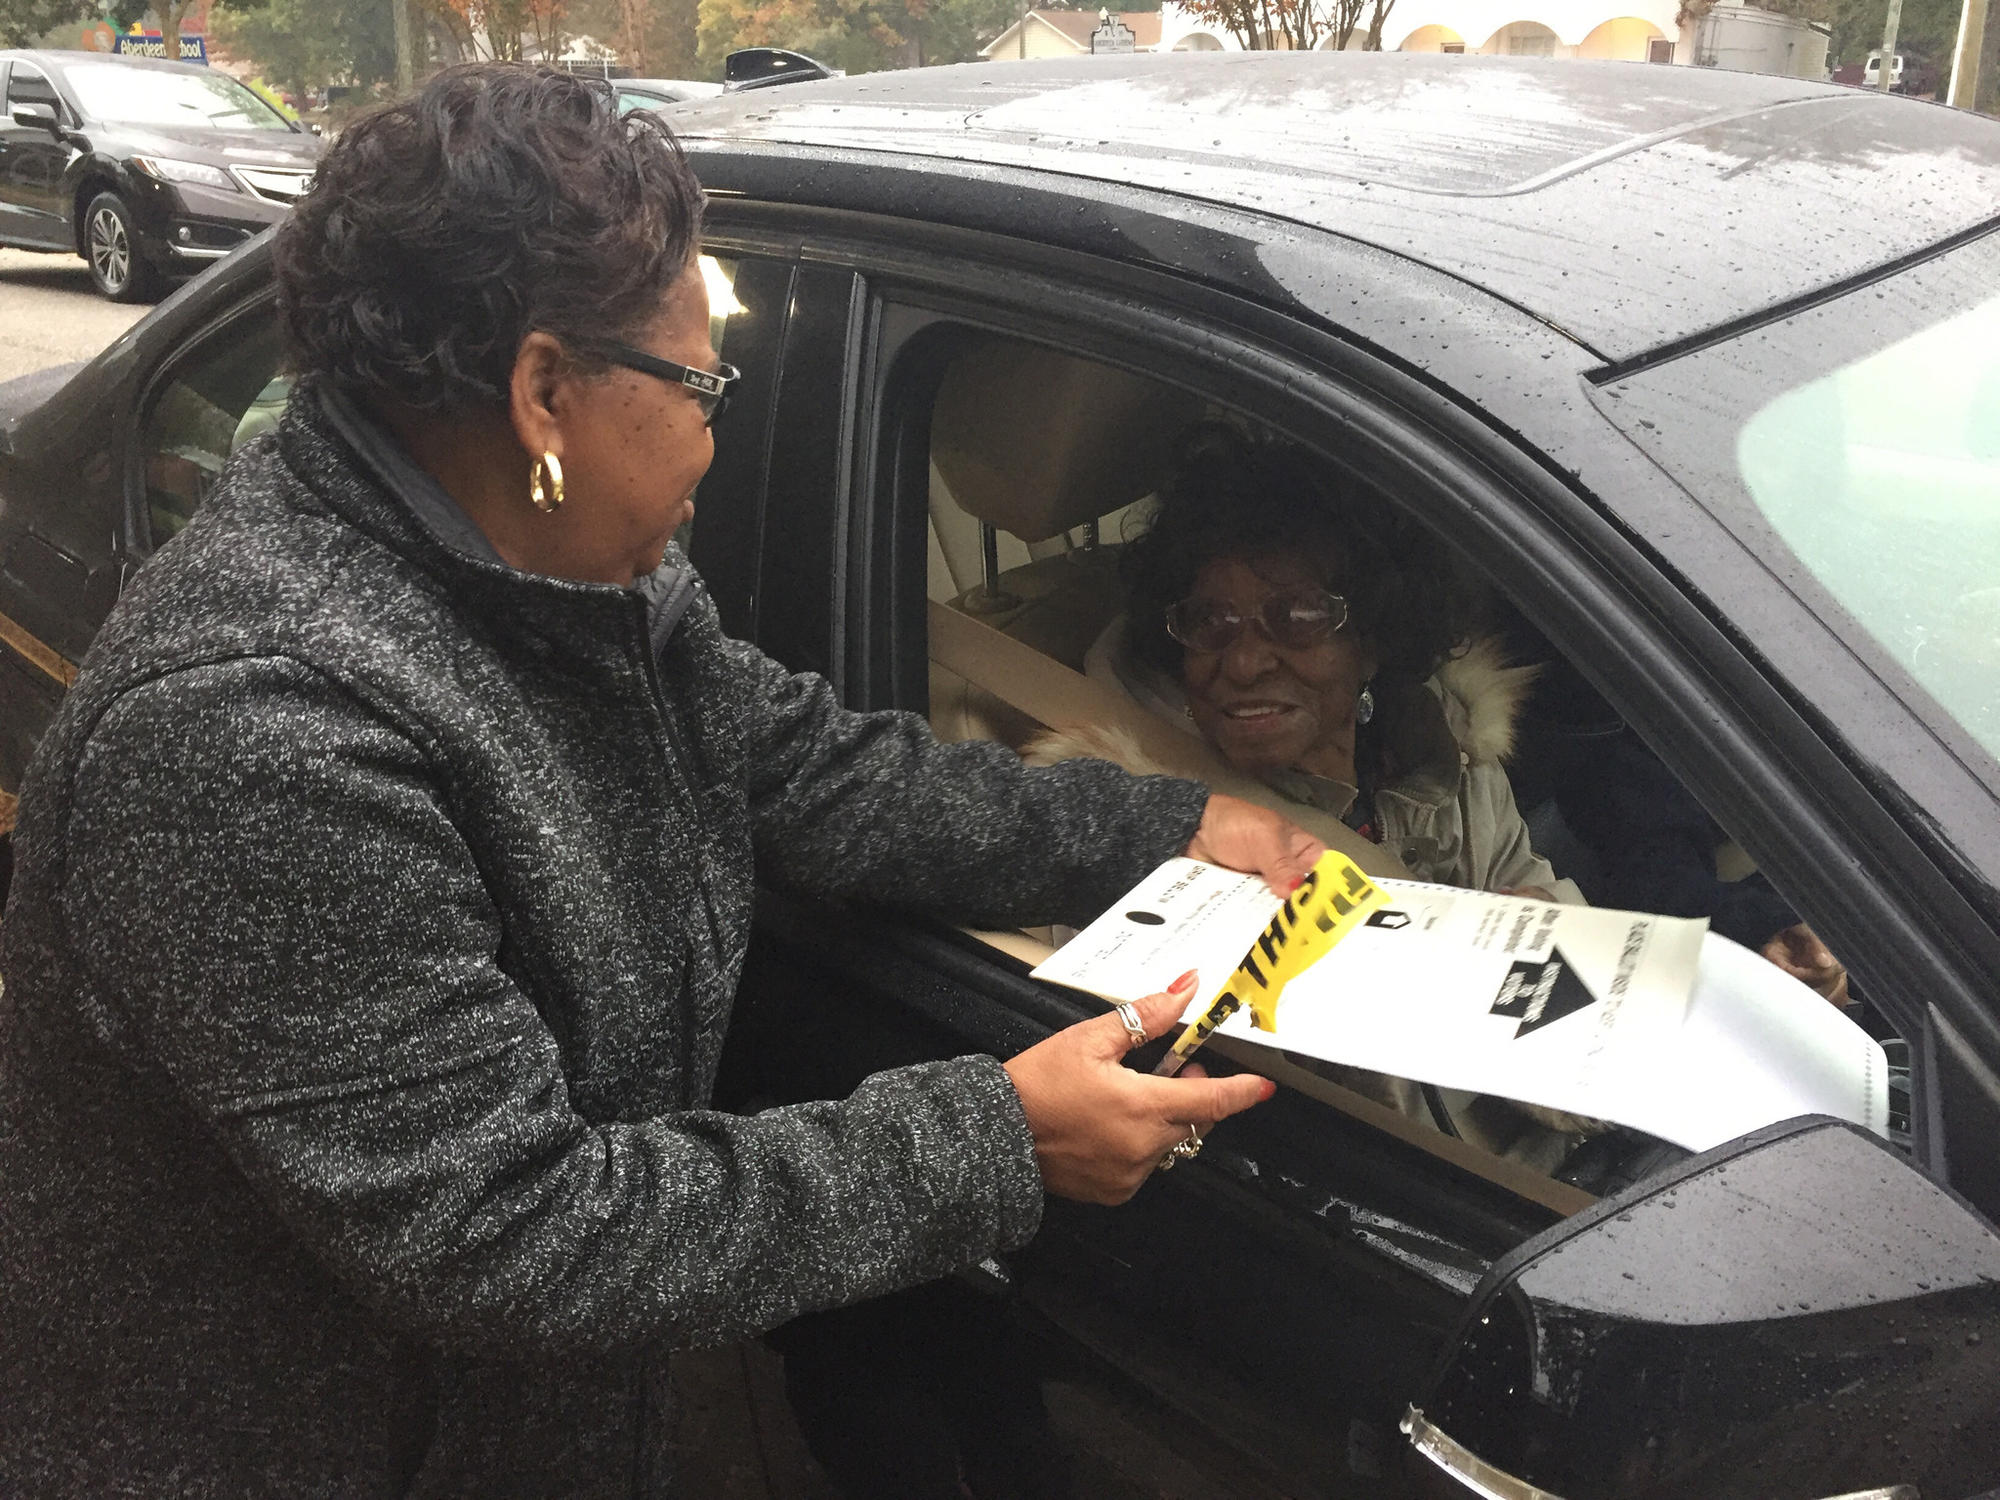 More than 30 people have cast curbside ballots at the Aberdeen precinct in Hampton Tuesday. Rev. Bertese Booker, 92, was one of those getting the curbside treatment, provided here by poll worker Brenda Perry.